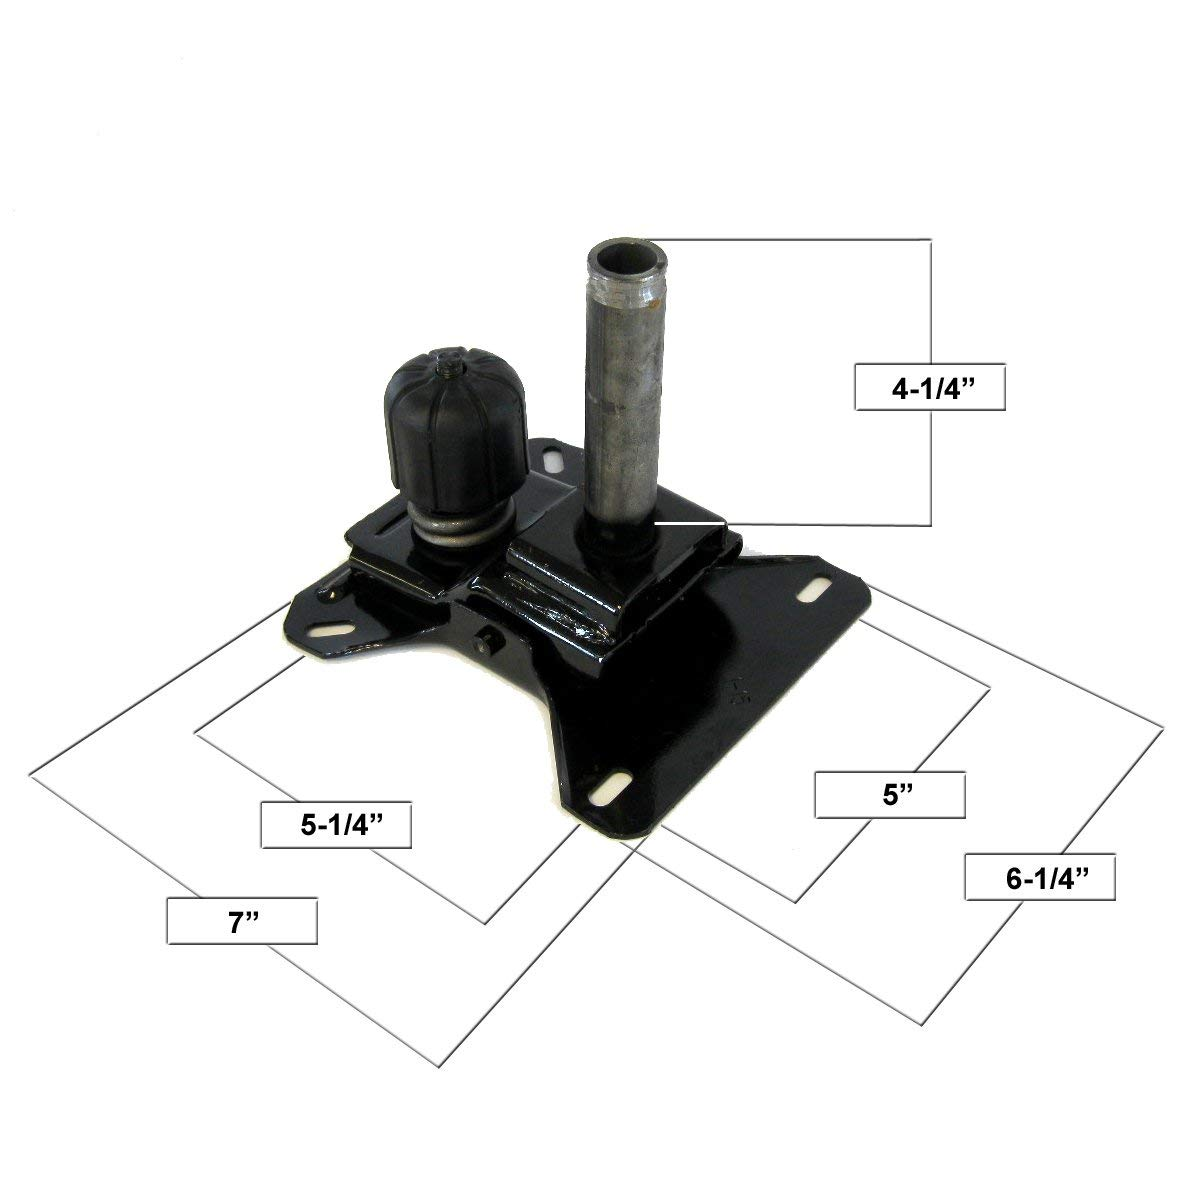 Replacement Swivel & Tilt for Caster Chairs